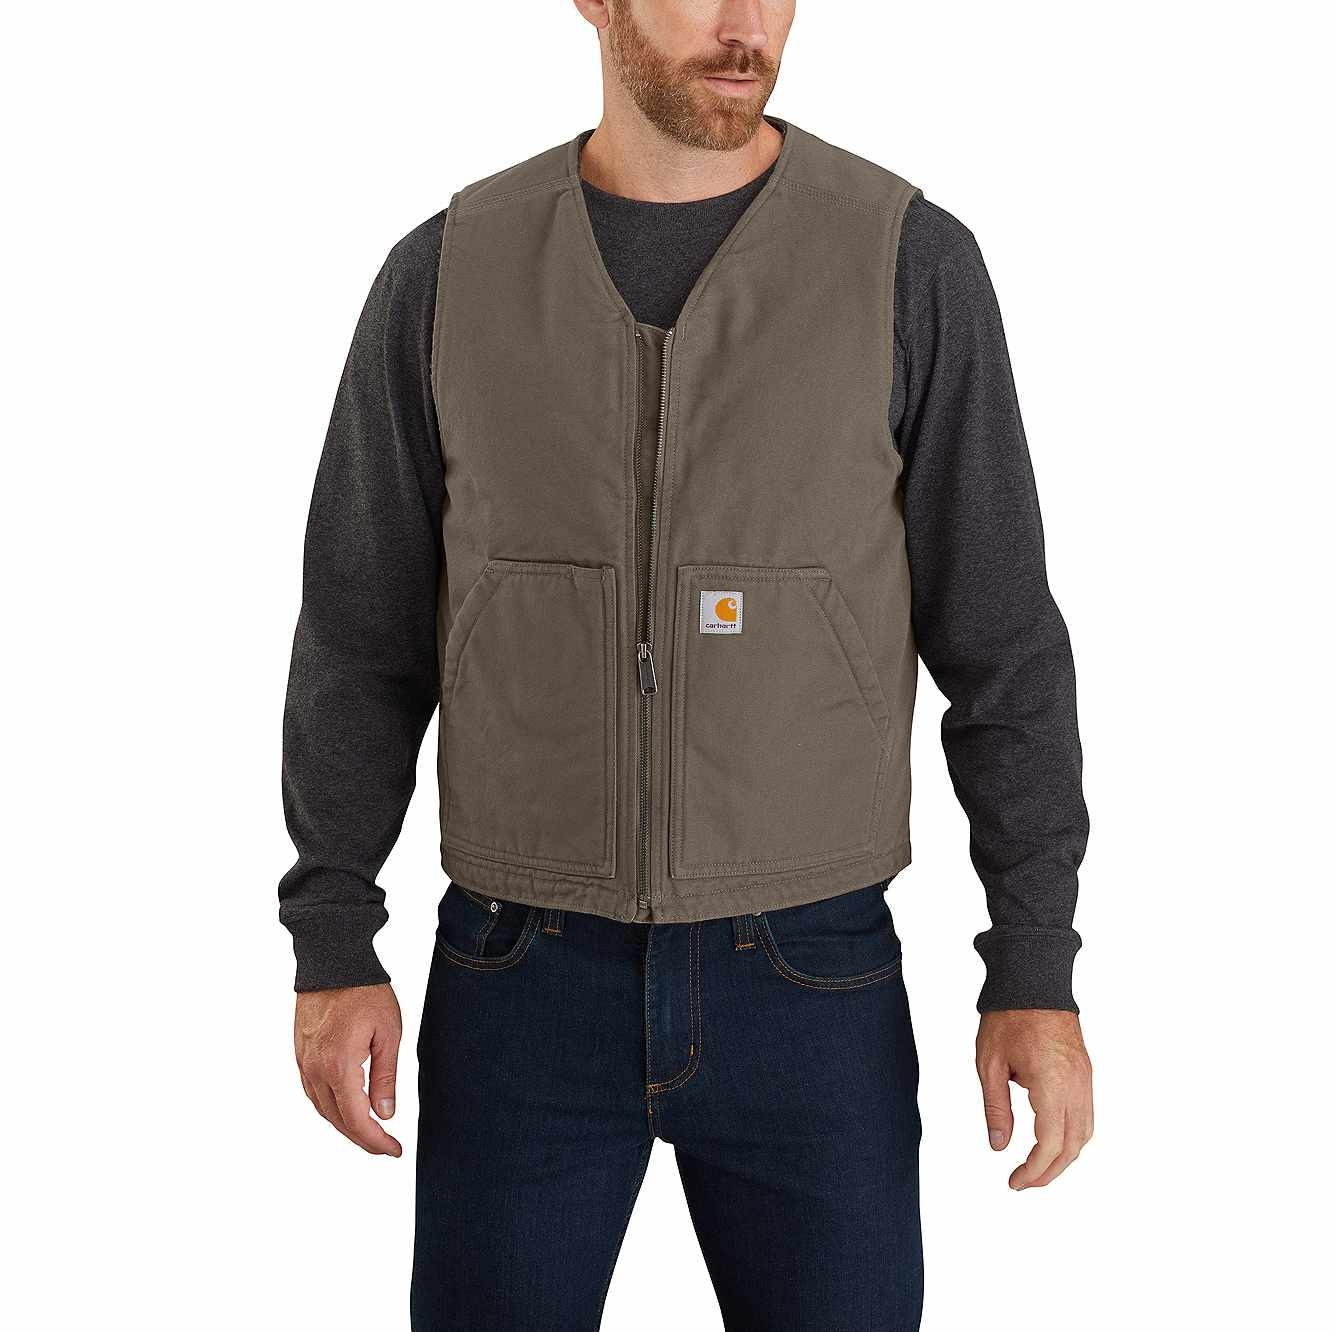 Picture of Washed Duck Sherpa Lined Vest in Driftwood